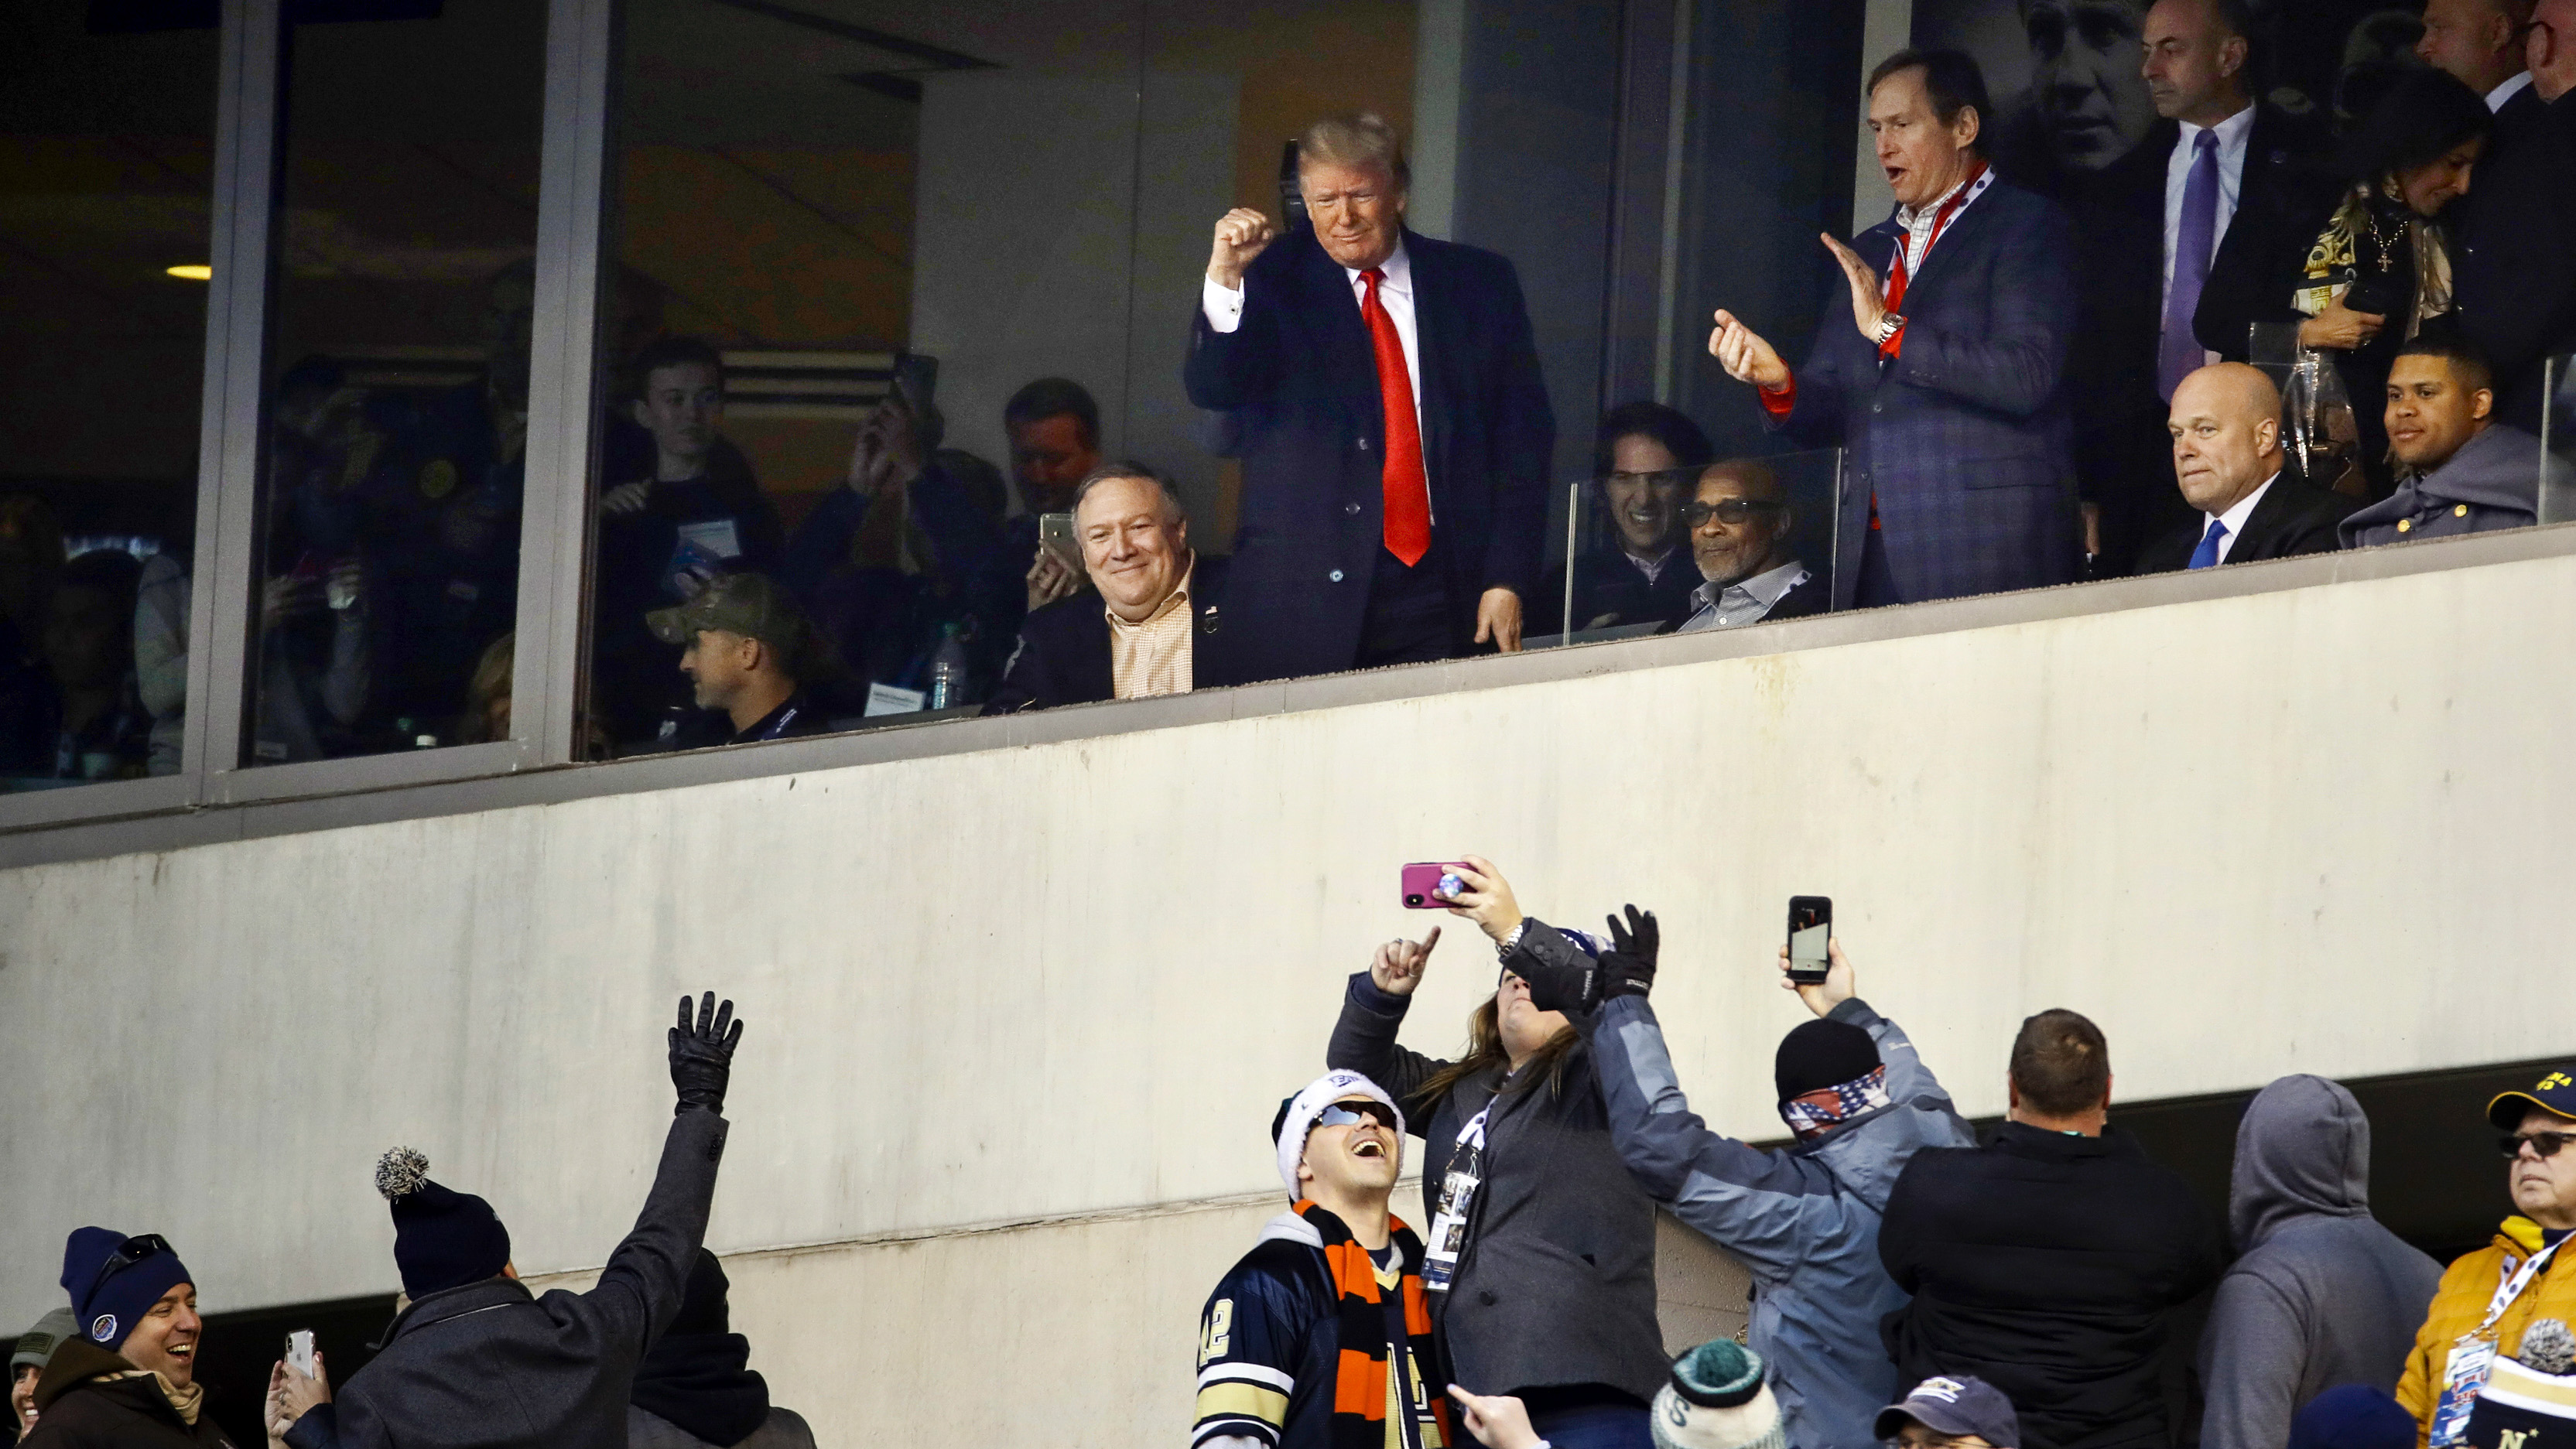 President Donald Trump, top center, gestures to the crowd during the first half of an NCAA college football game between Army and Navy, Saturday, Dec. 8, 2018, in Philadelphia. (AP Photo/Matt Rourke)